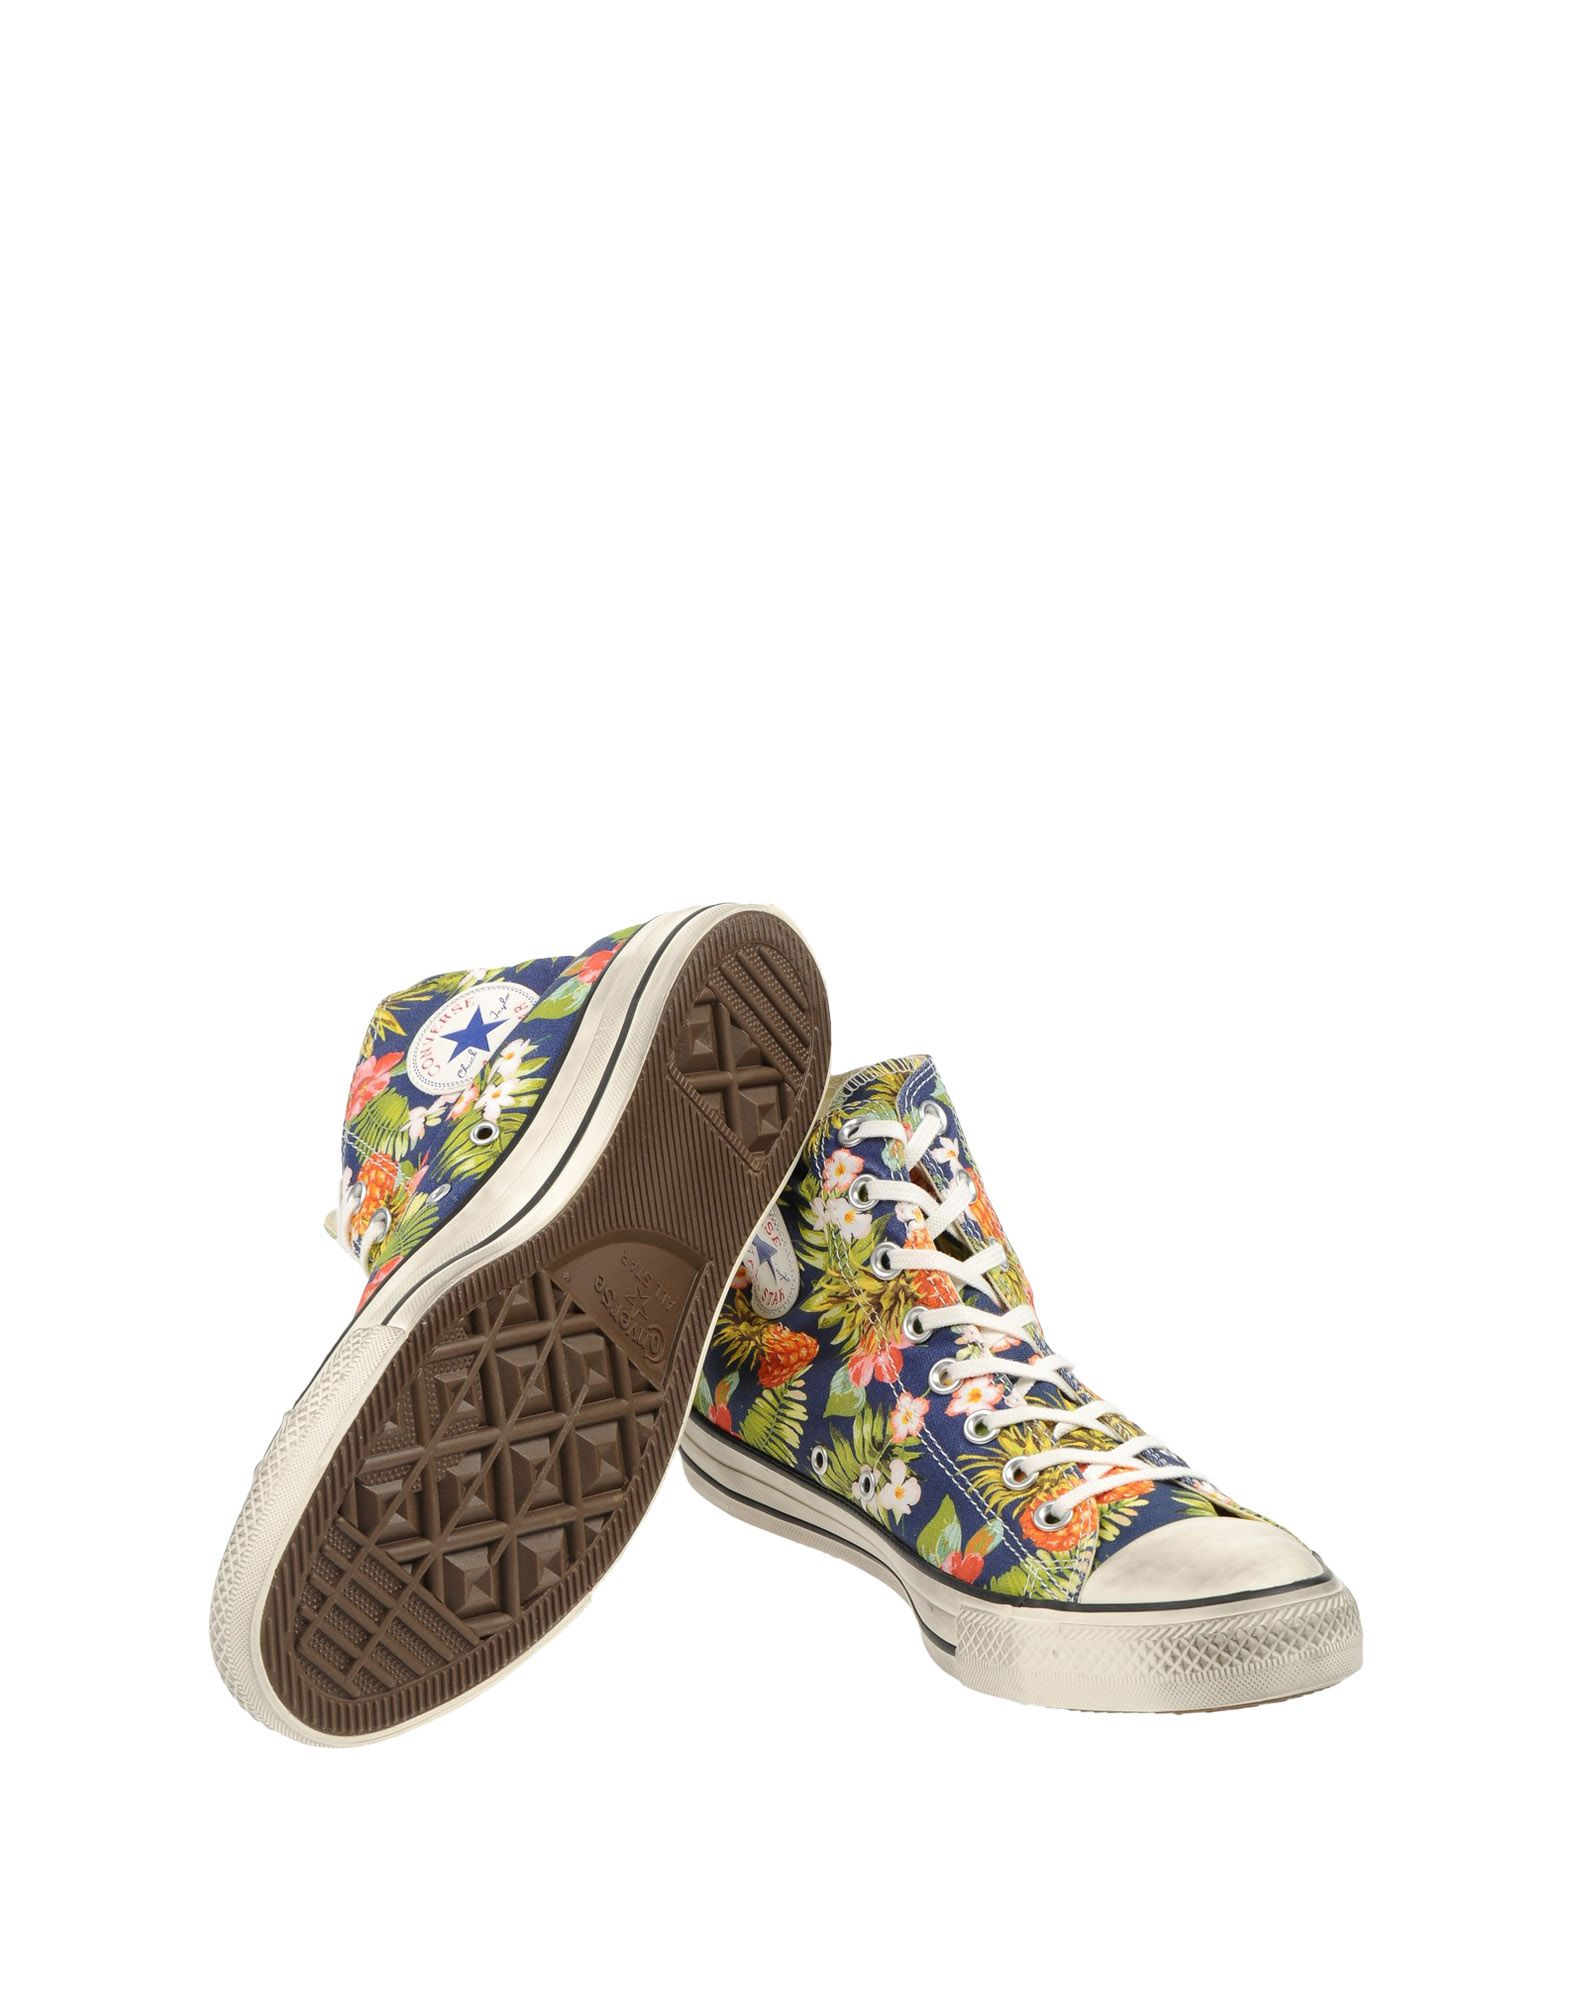 Sneakers Converse All Star All Star Hi Canv Graphics - Homme - Sneakers Converse All Star sur